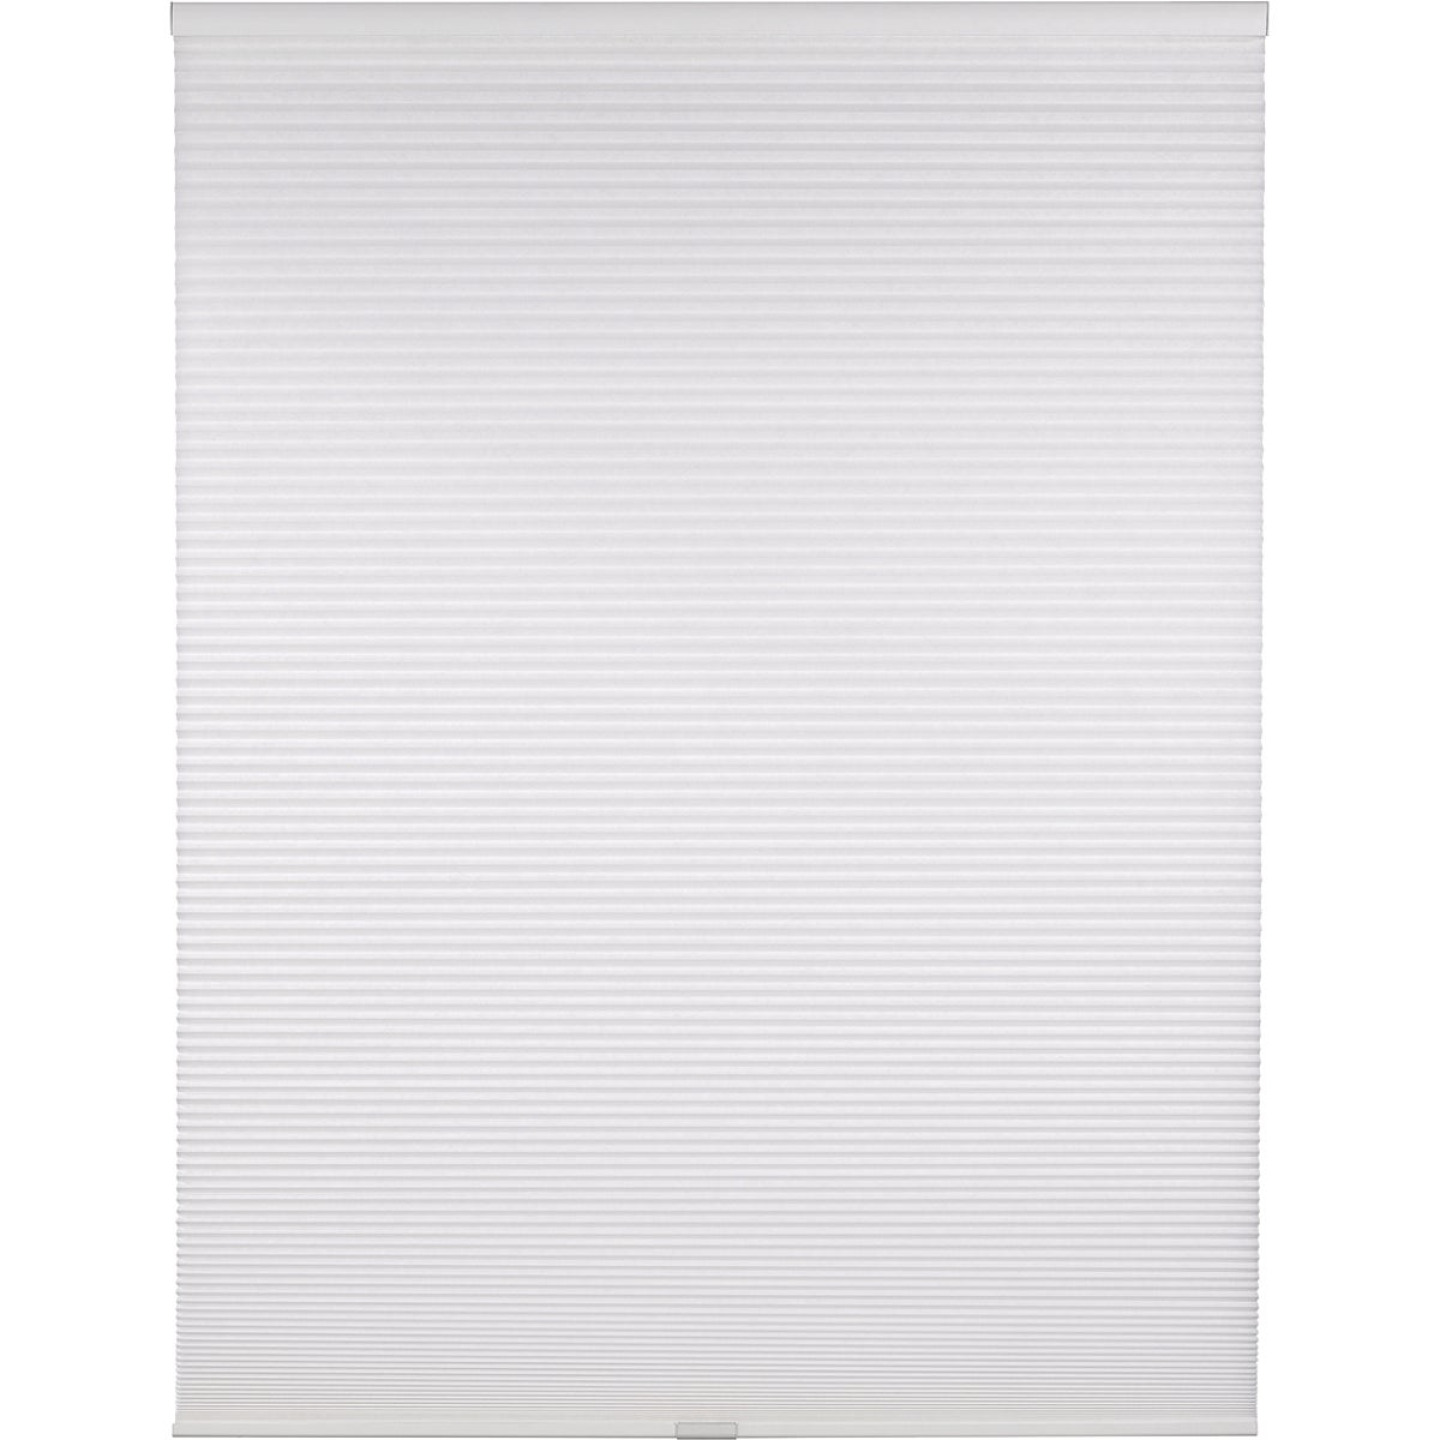 Home Impressions 1 In. Light Filtering Cellular White 47 In. x 72 In. Cordless Shade Image 1